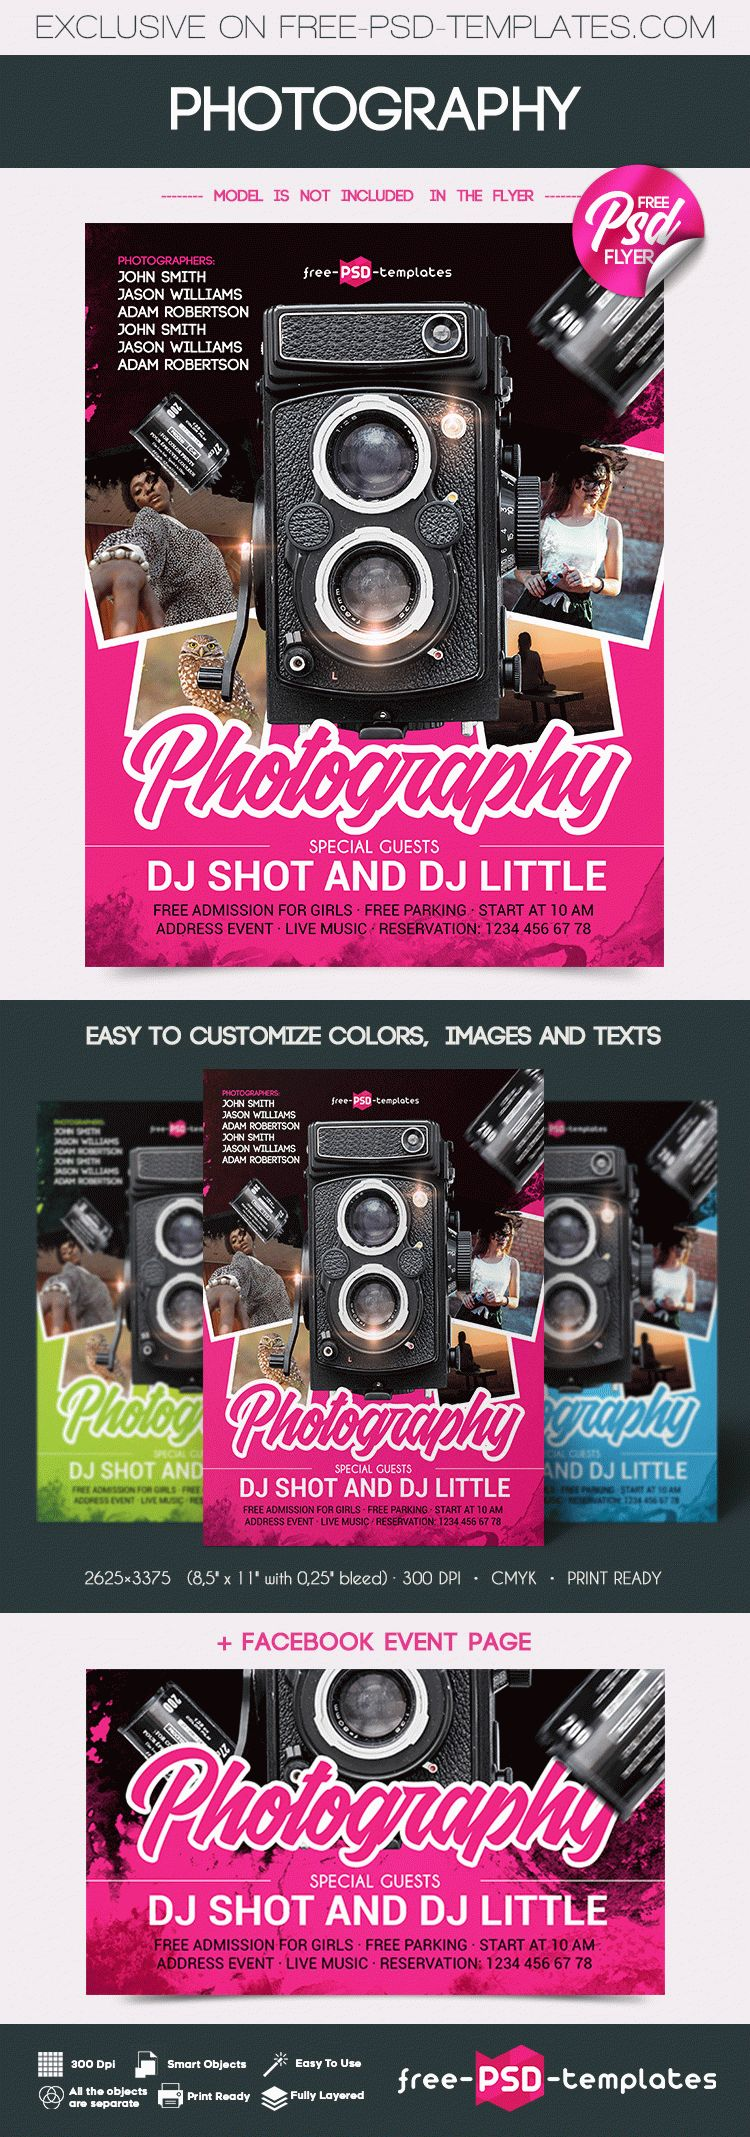 Free photography flyer in psd free psd templates the template is fully layered and well organized you are free to download this psd template and modify it the way you wish maxwellsz